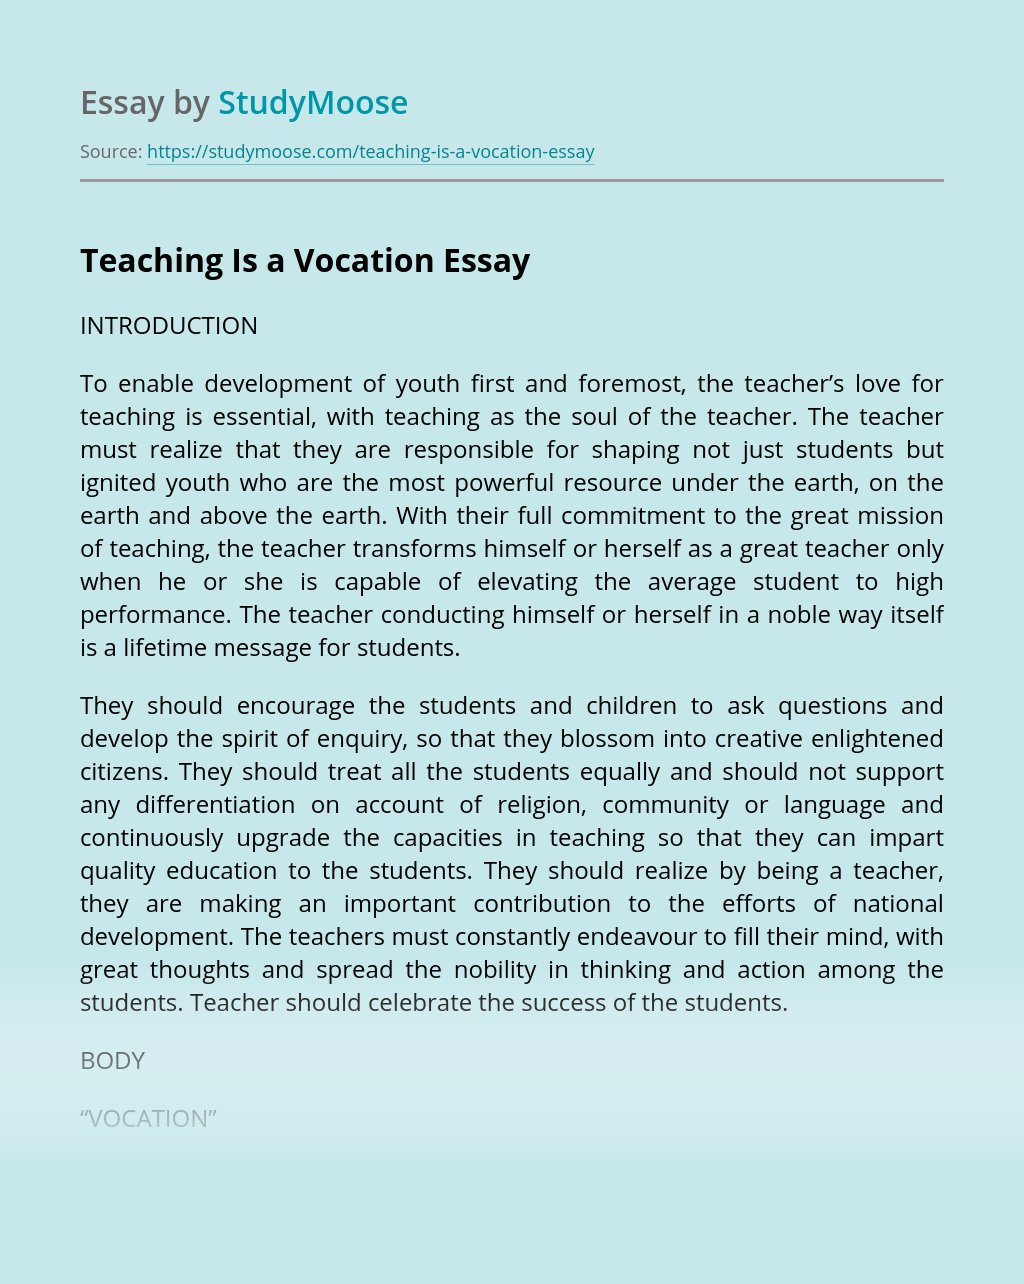 Teaching Is a Vocation